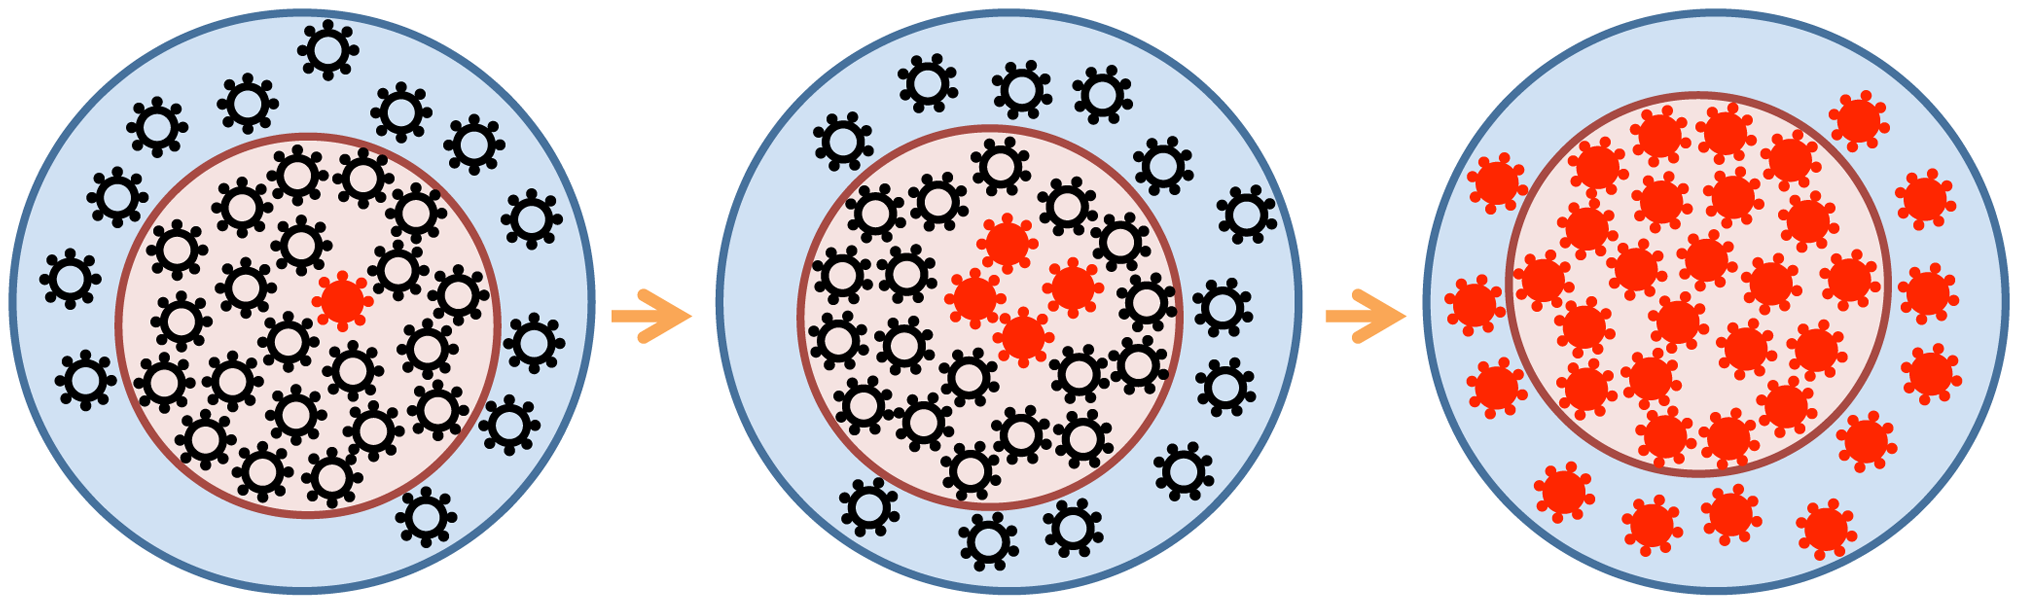 """Beneficial viral mutants (red) arise in the """"effective"""" virus subpopulation (<i>N</i><sub>eff</sub>, pink circle) and spread gradually to the entire """"census"""" population (blue circle)."""